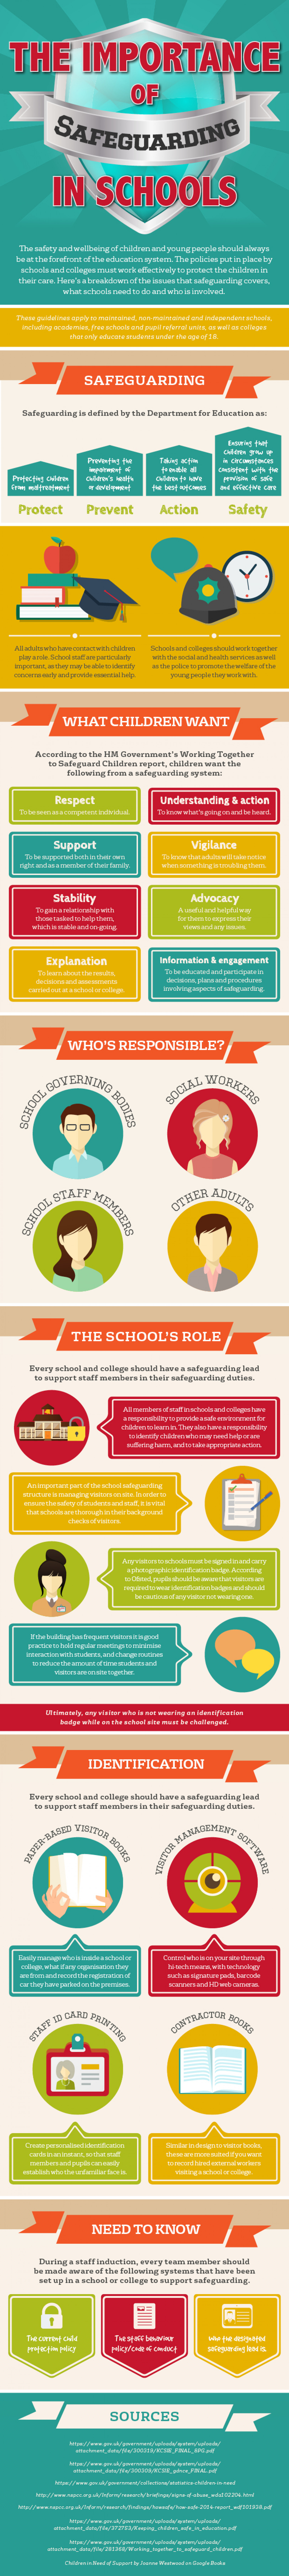 The Importance of Safeguarding in Schools Infographic